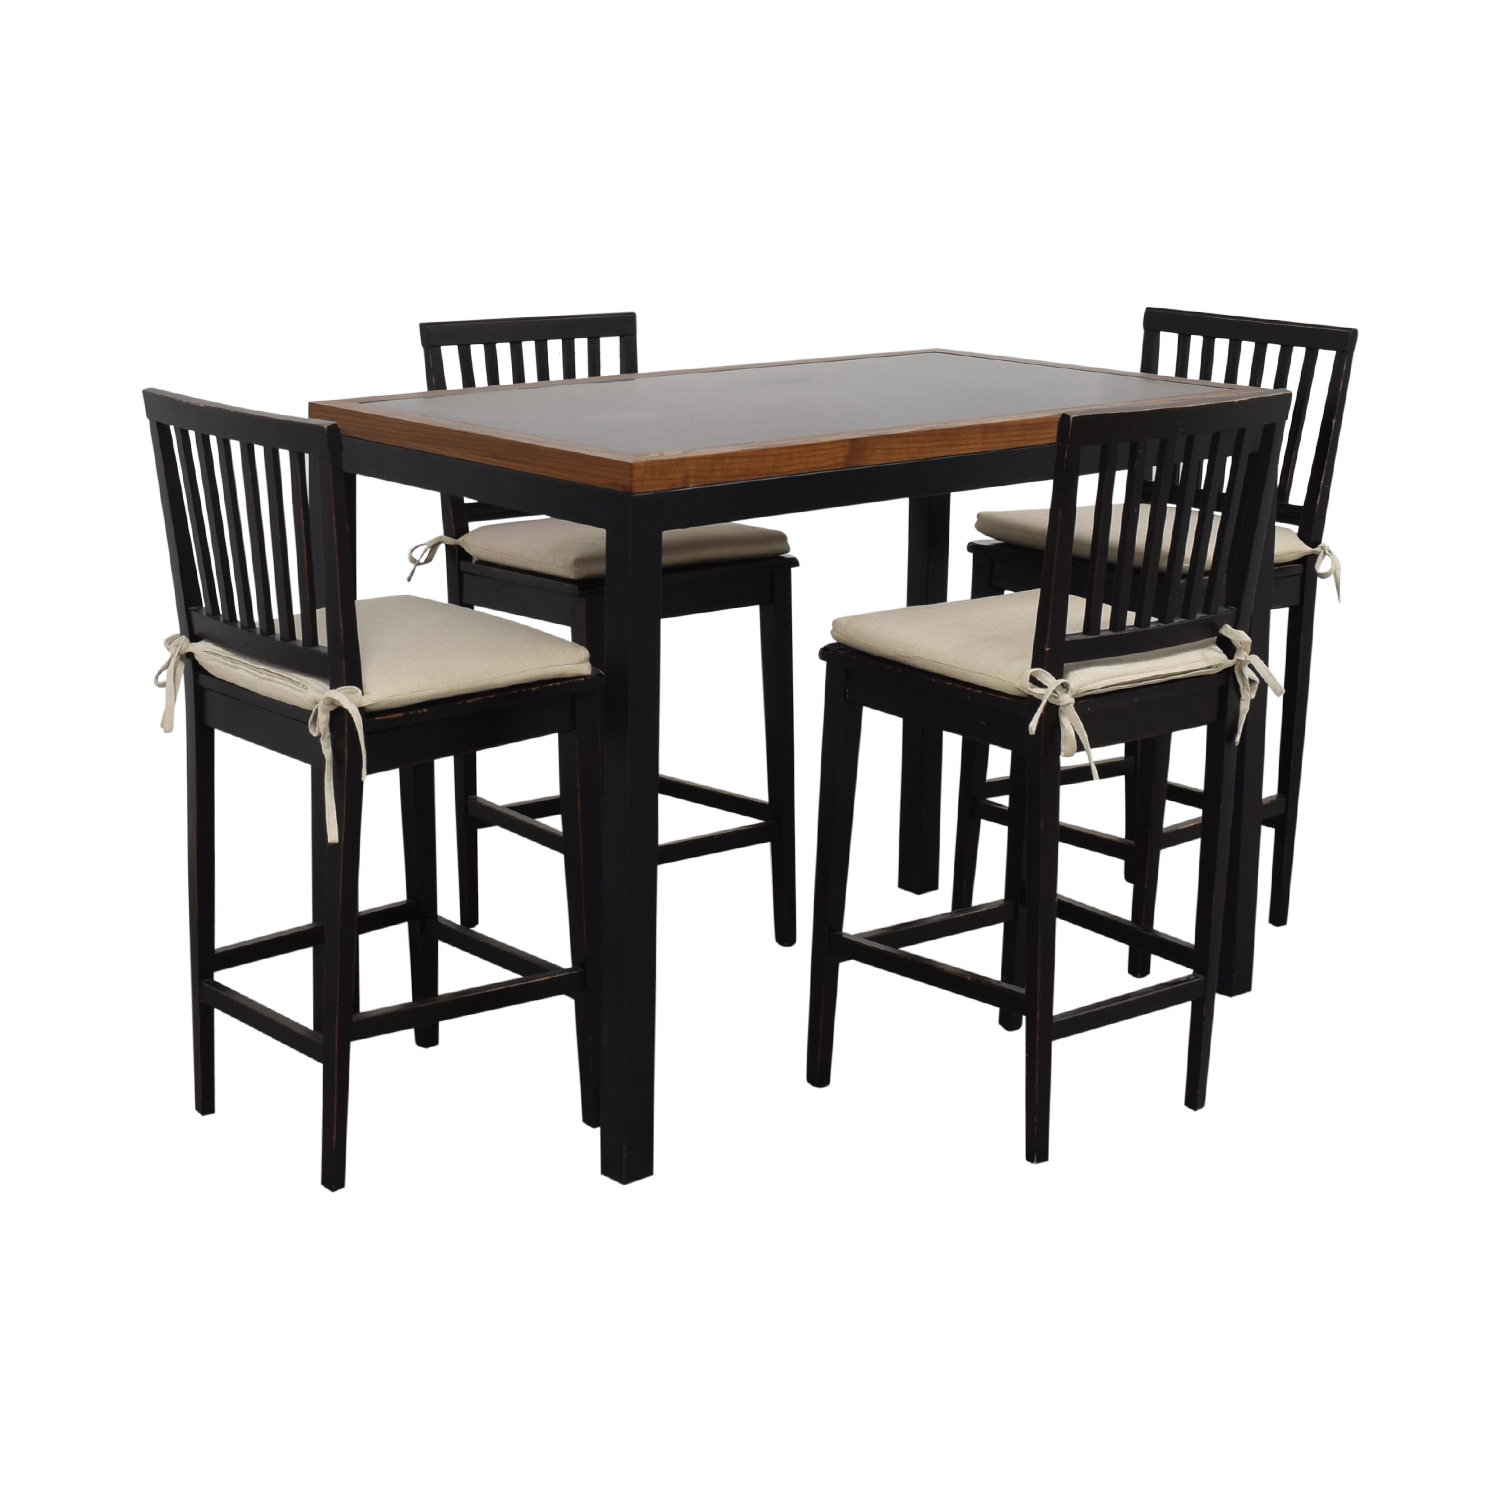 Crate & Barrel Parsons Counter High Dining Table Crate & Barrel